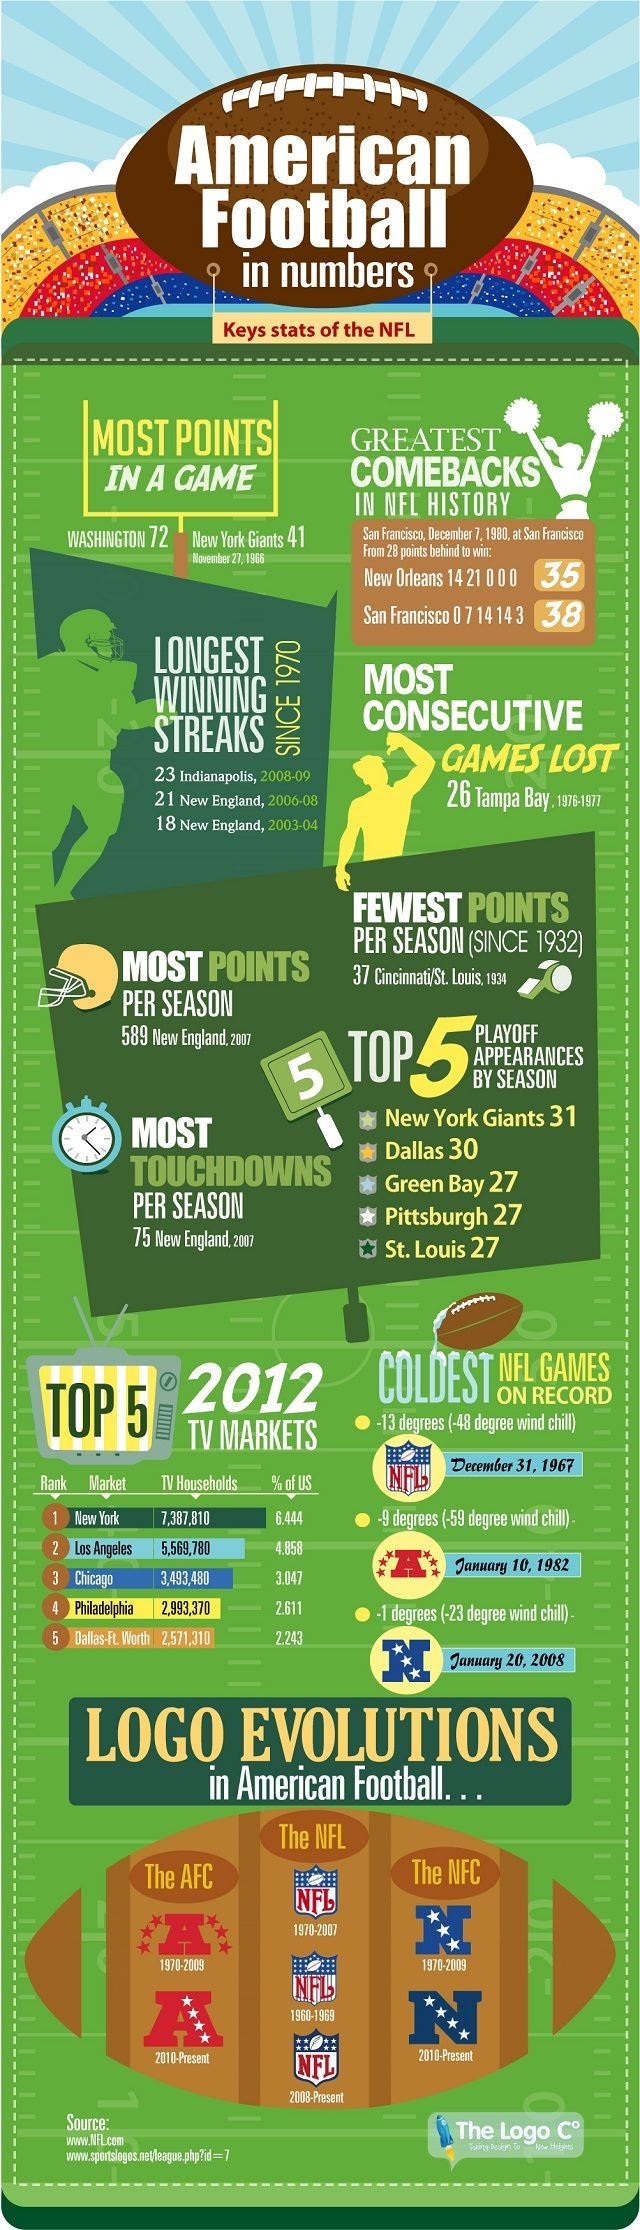 American Football in Numbers